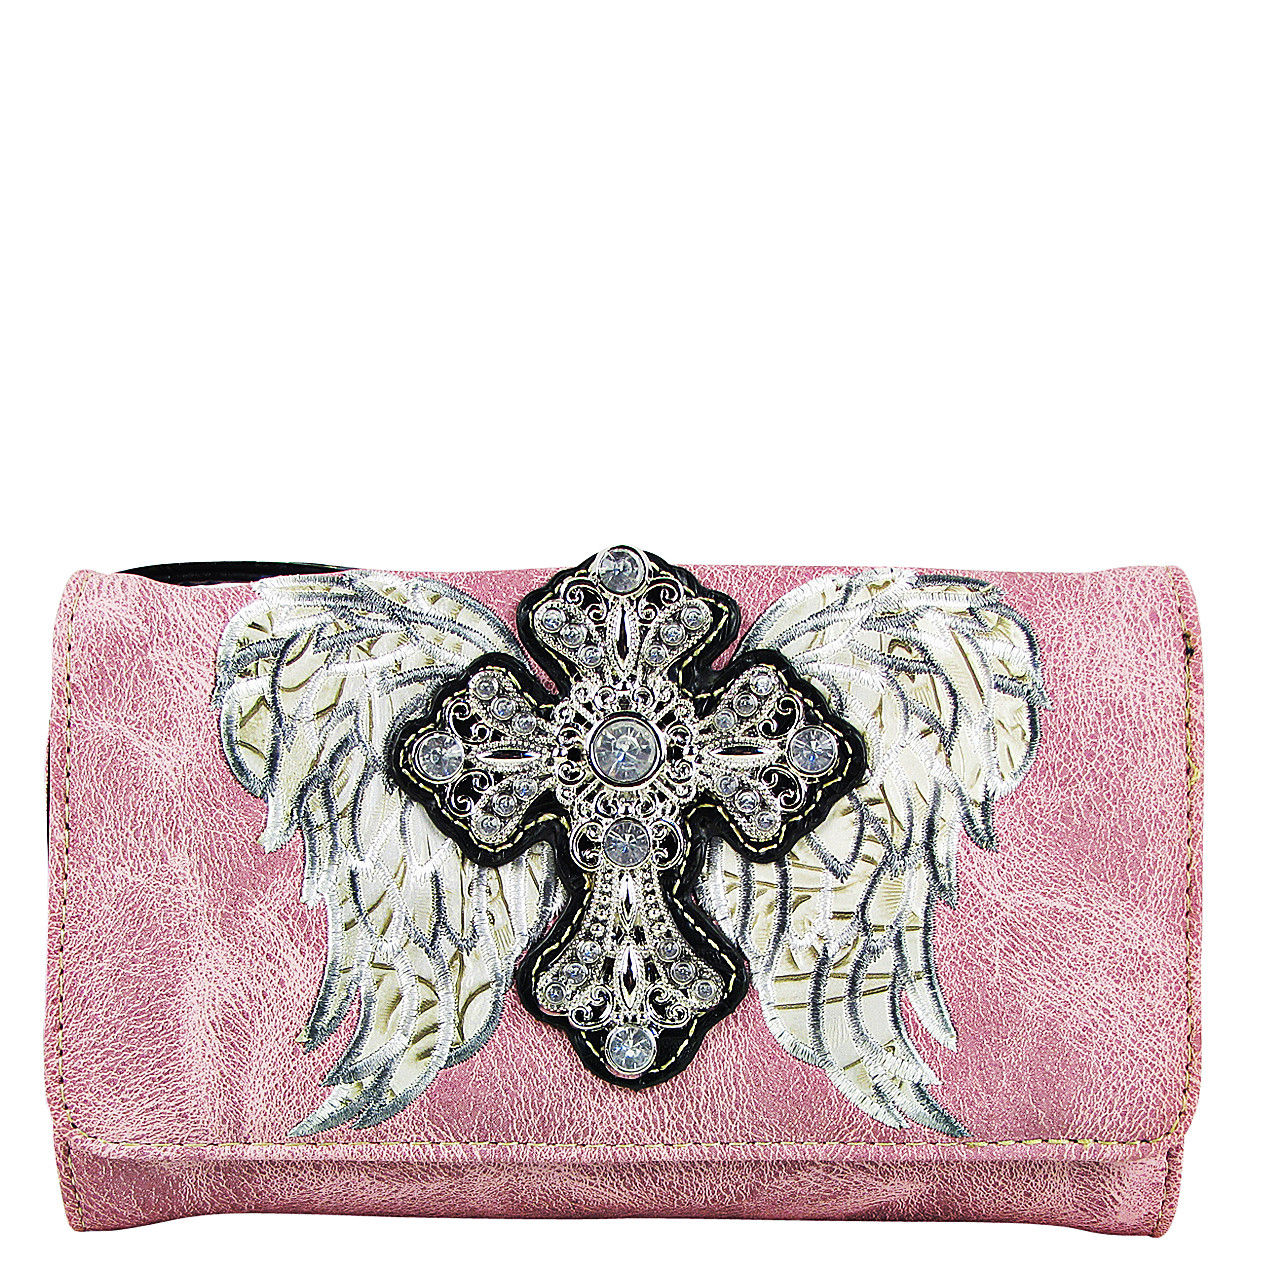 PINK WINGS WITH RHINESTONE CROSS LOOK CLUTCH TRIFOLD WALLET CW1-0477PNK